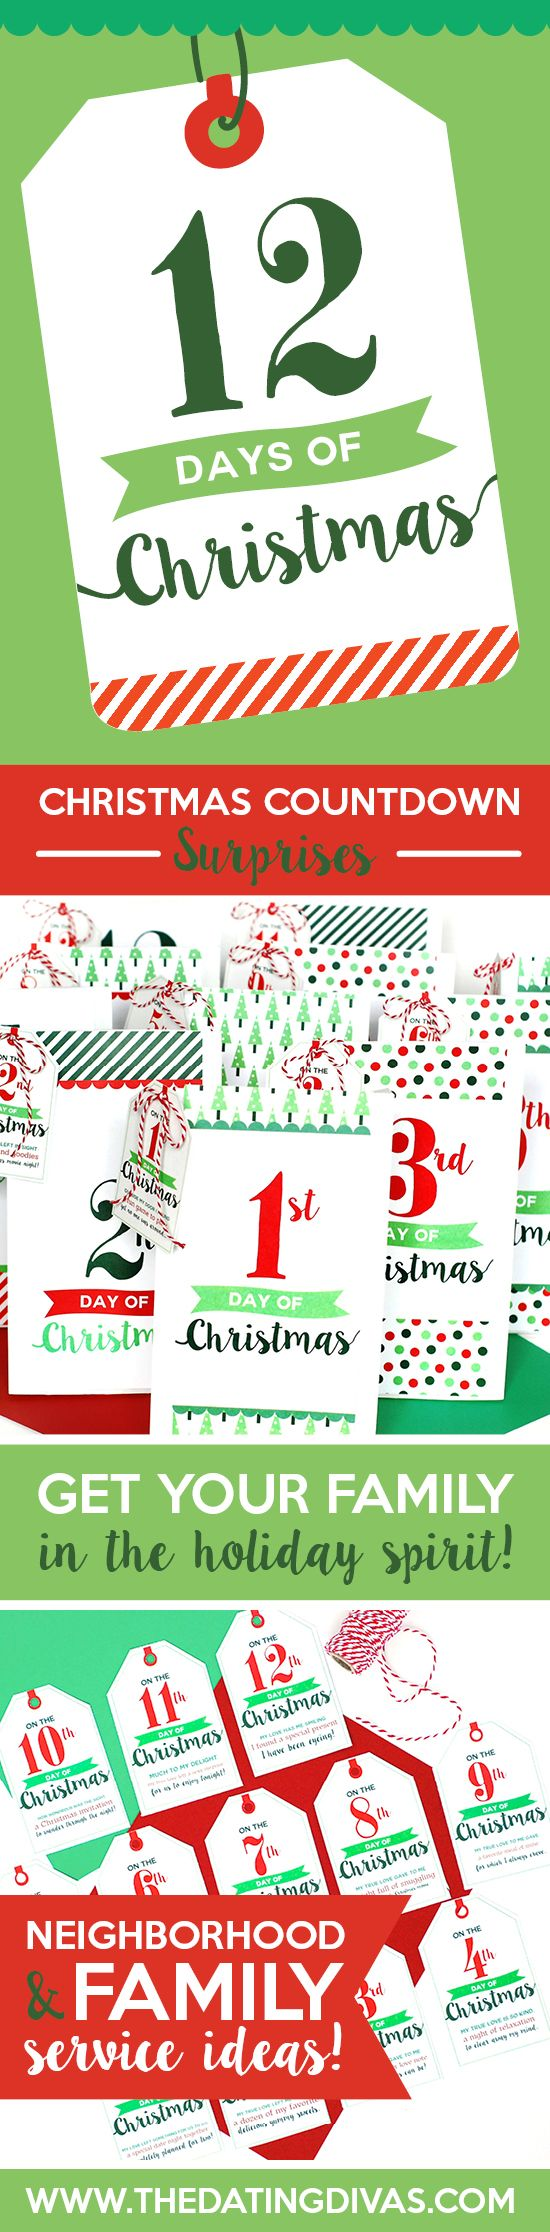 12 Days Of Christmas List.Diy Gifts 12 Days Of Christmas Service Idea Everything